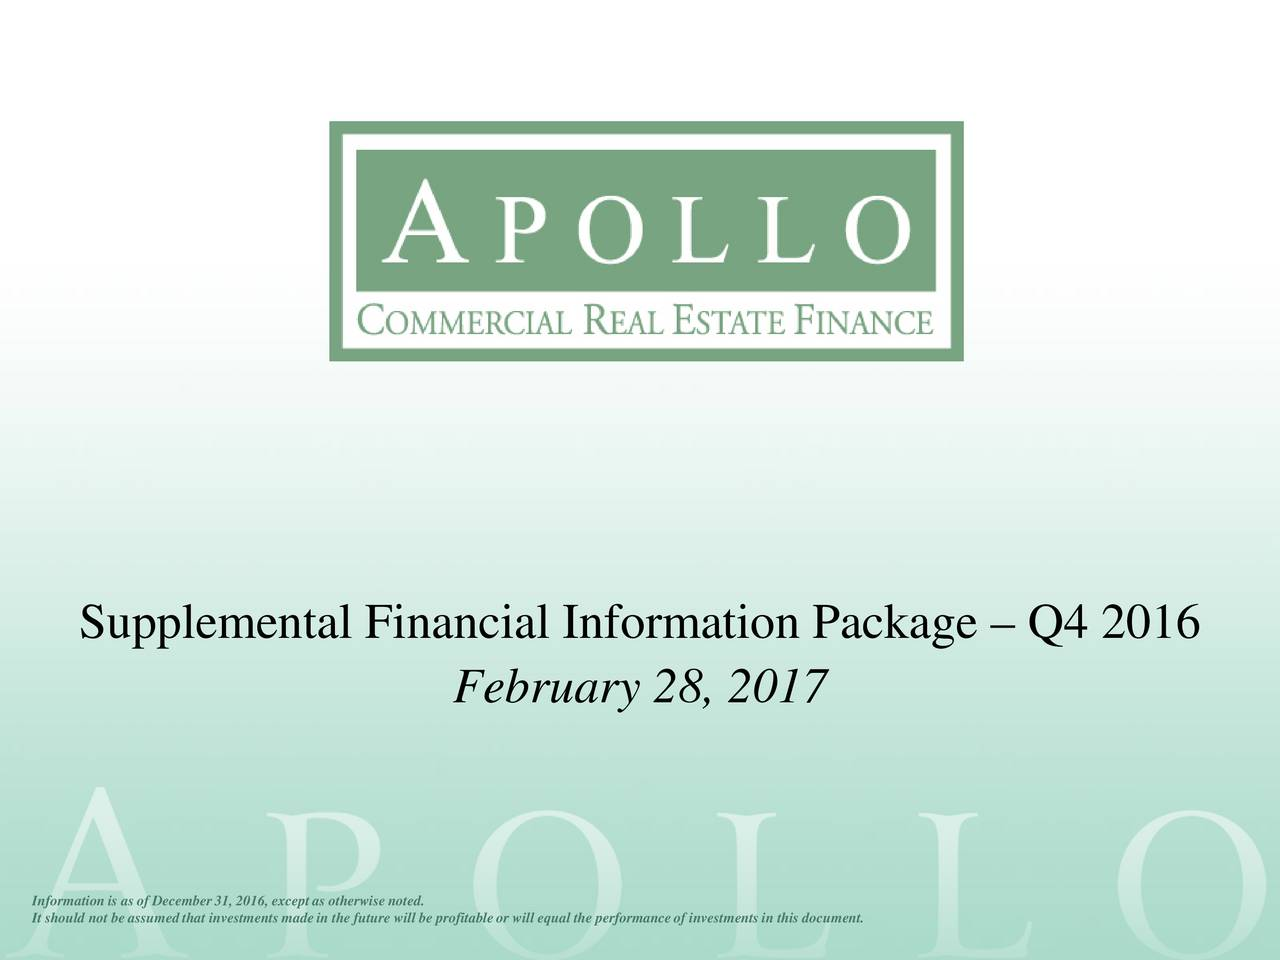 February 28, 2017 Information is asof December 31, 2016, exceptas otherwise noted. It should not be assumed that investments madein the future will be profitable or will equal the performanceof investments in this document.